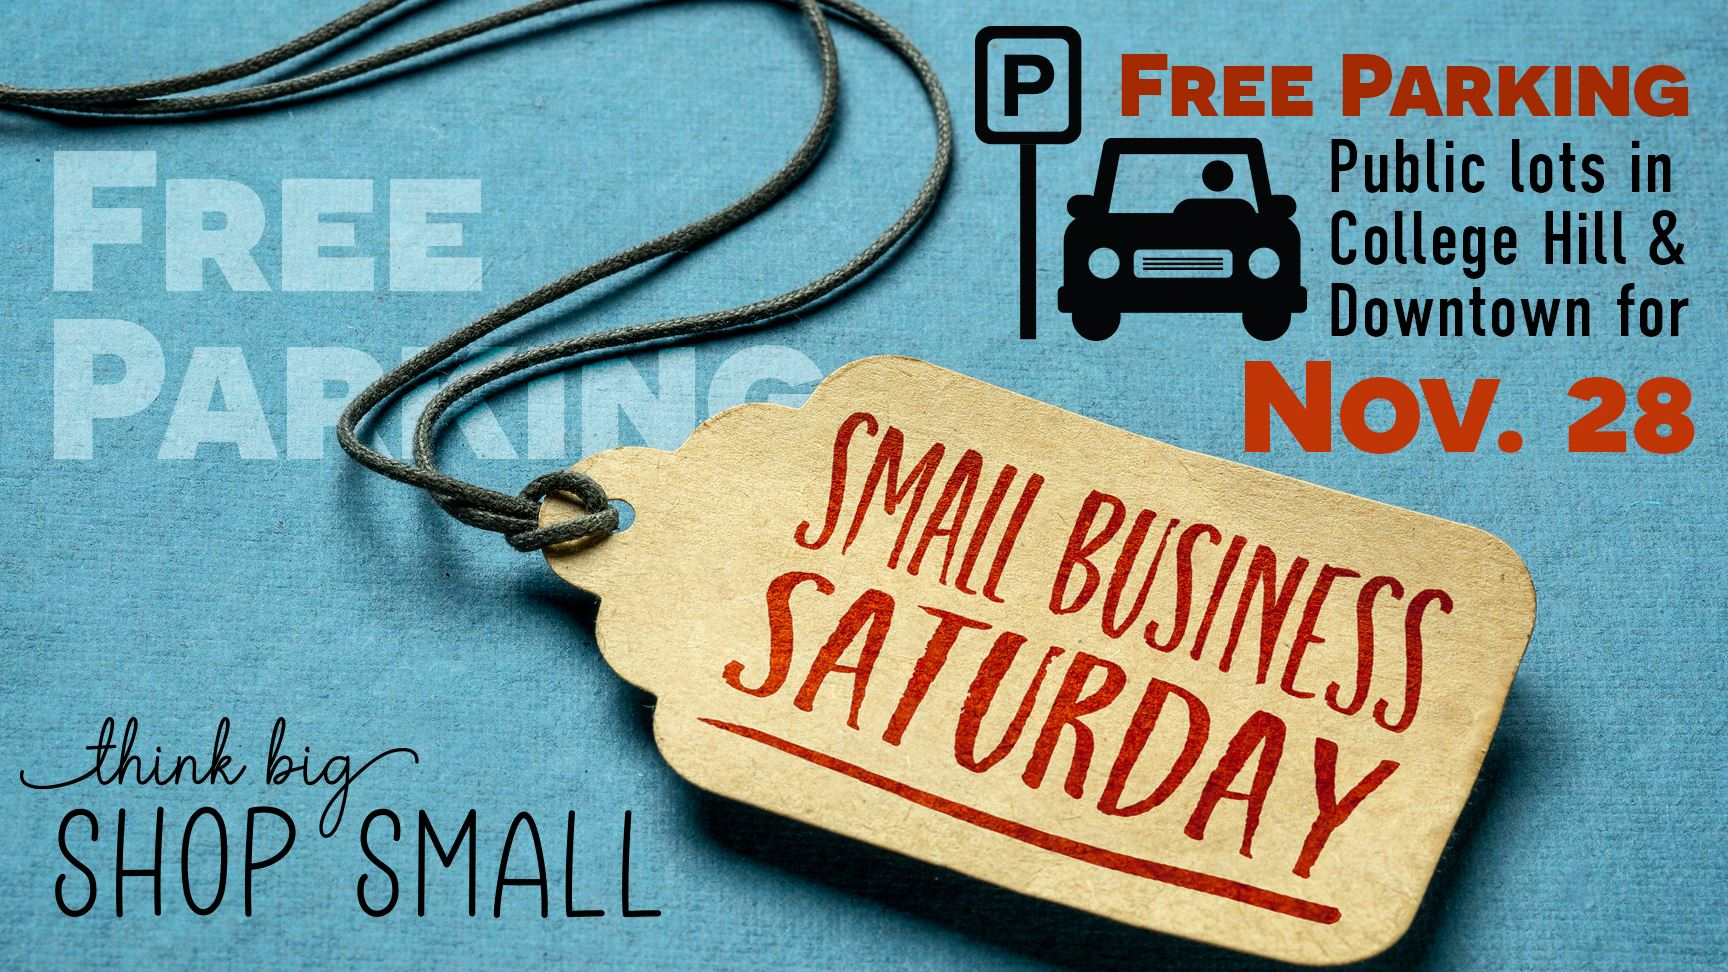 small business saturday FB